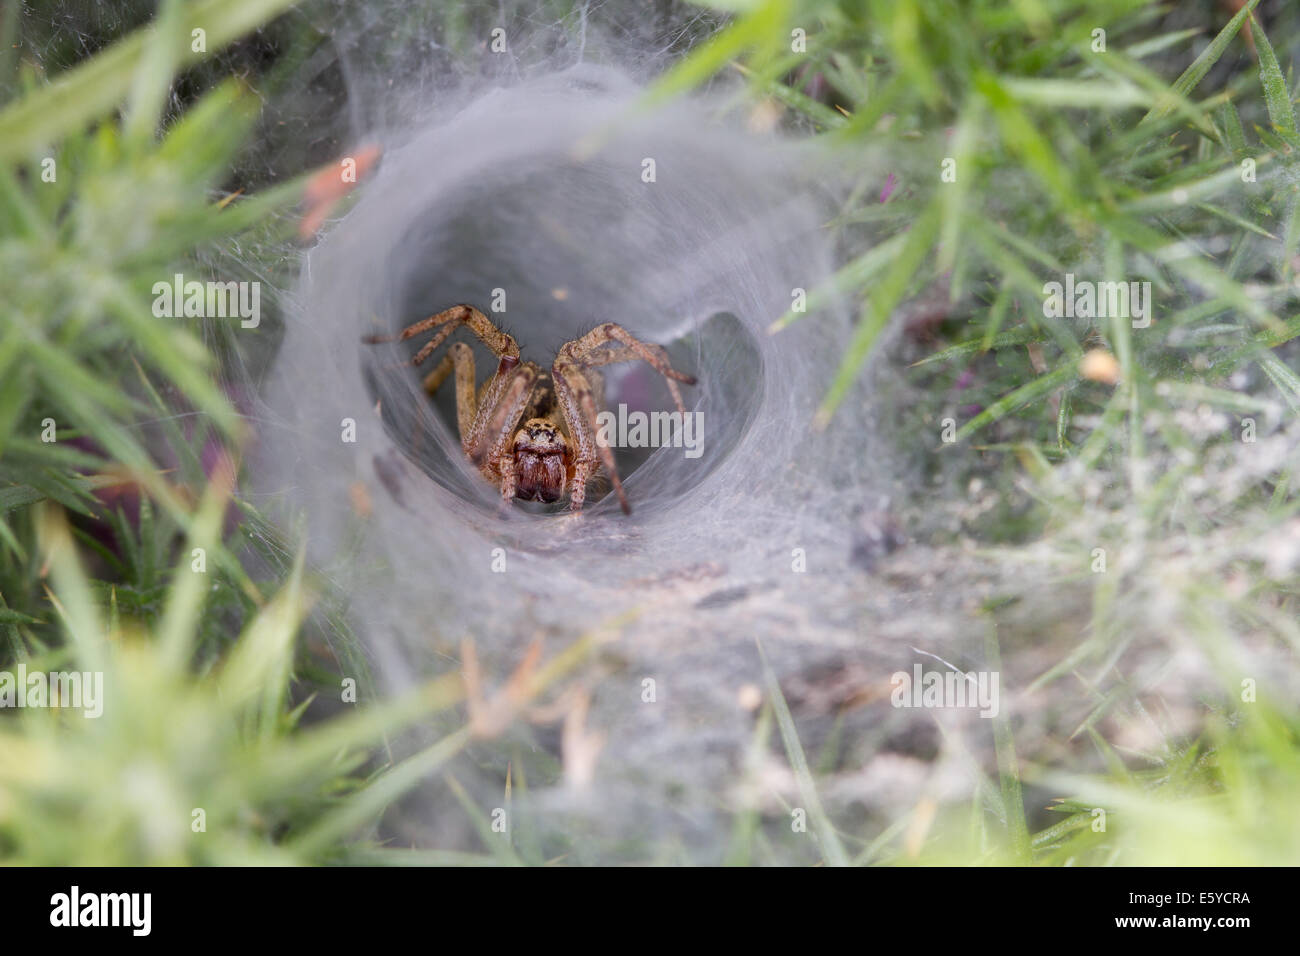 Nursery-web Spider (Agelena labyrinthica) lurking at the entrance of her web retreat - Stock Image